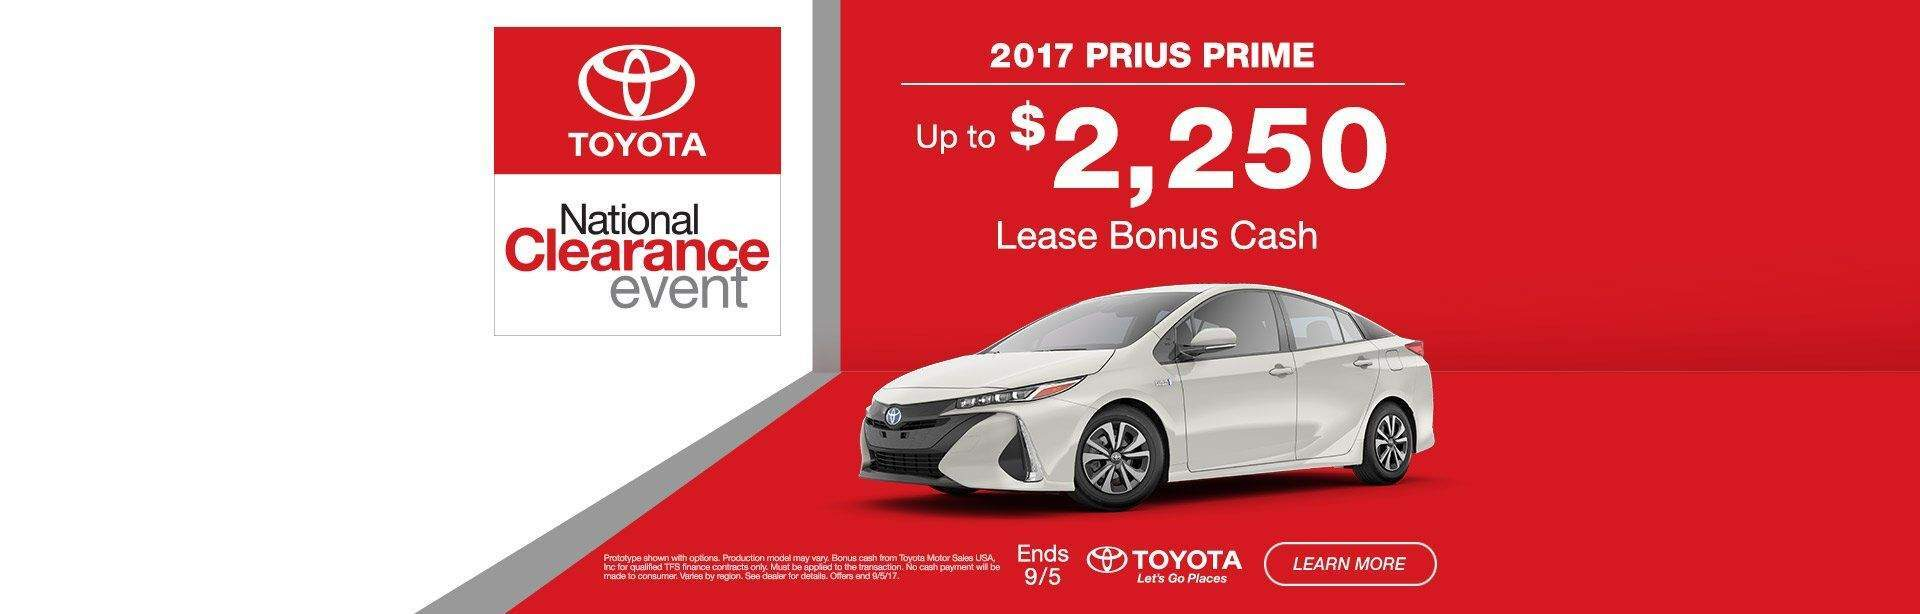 National Clearance Event Prius Prime